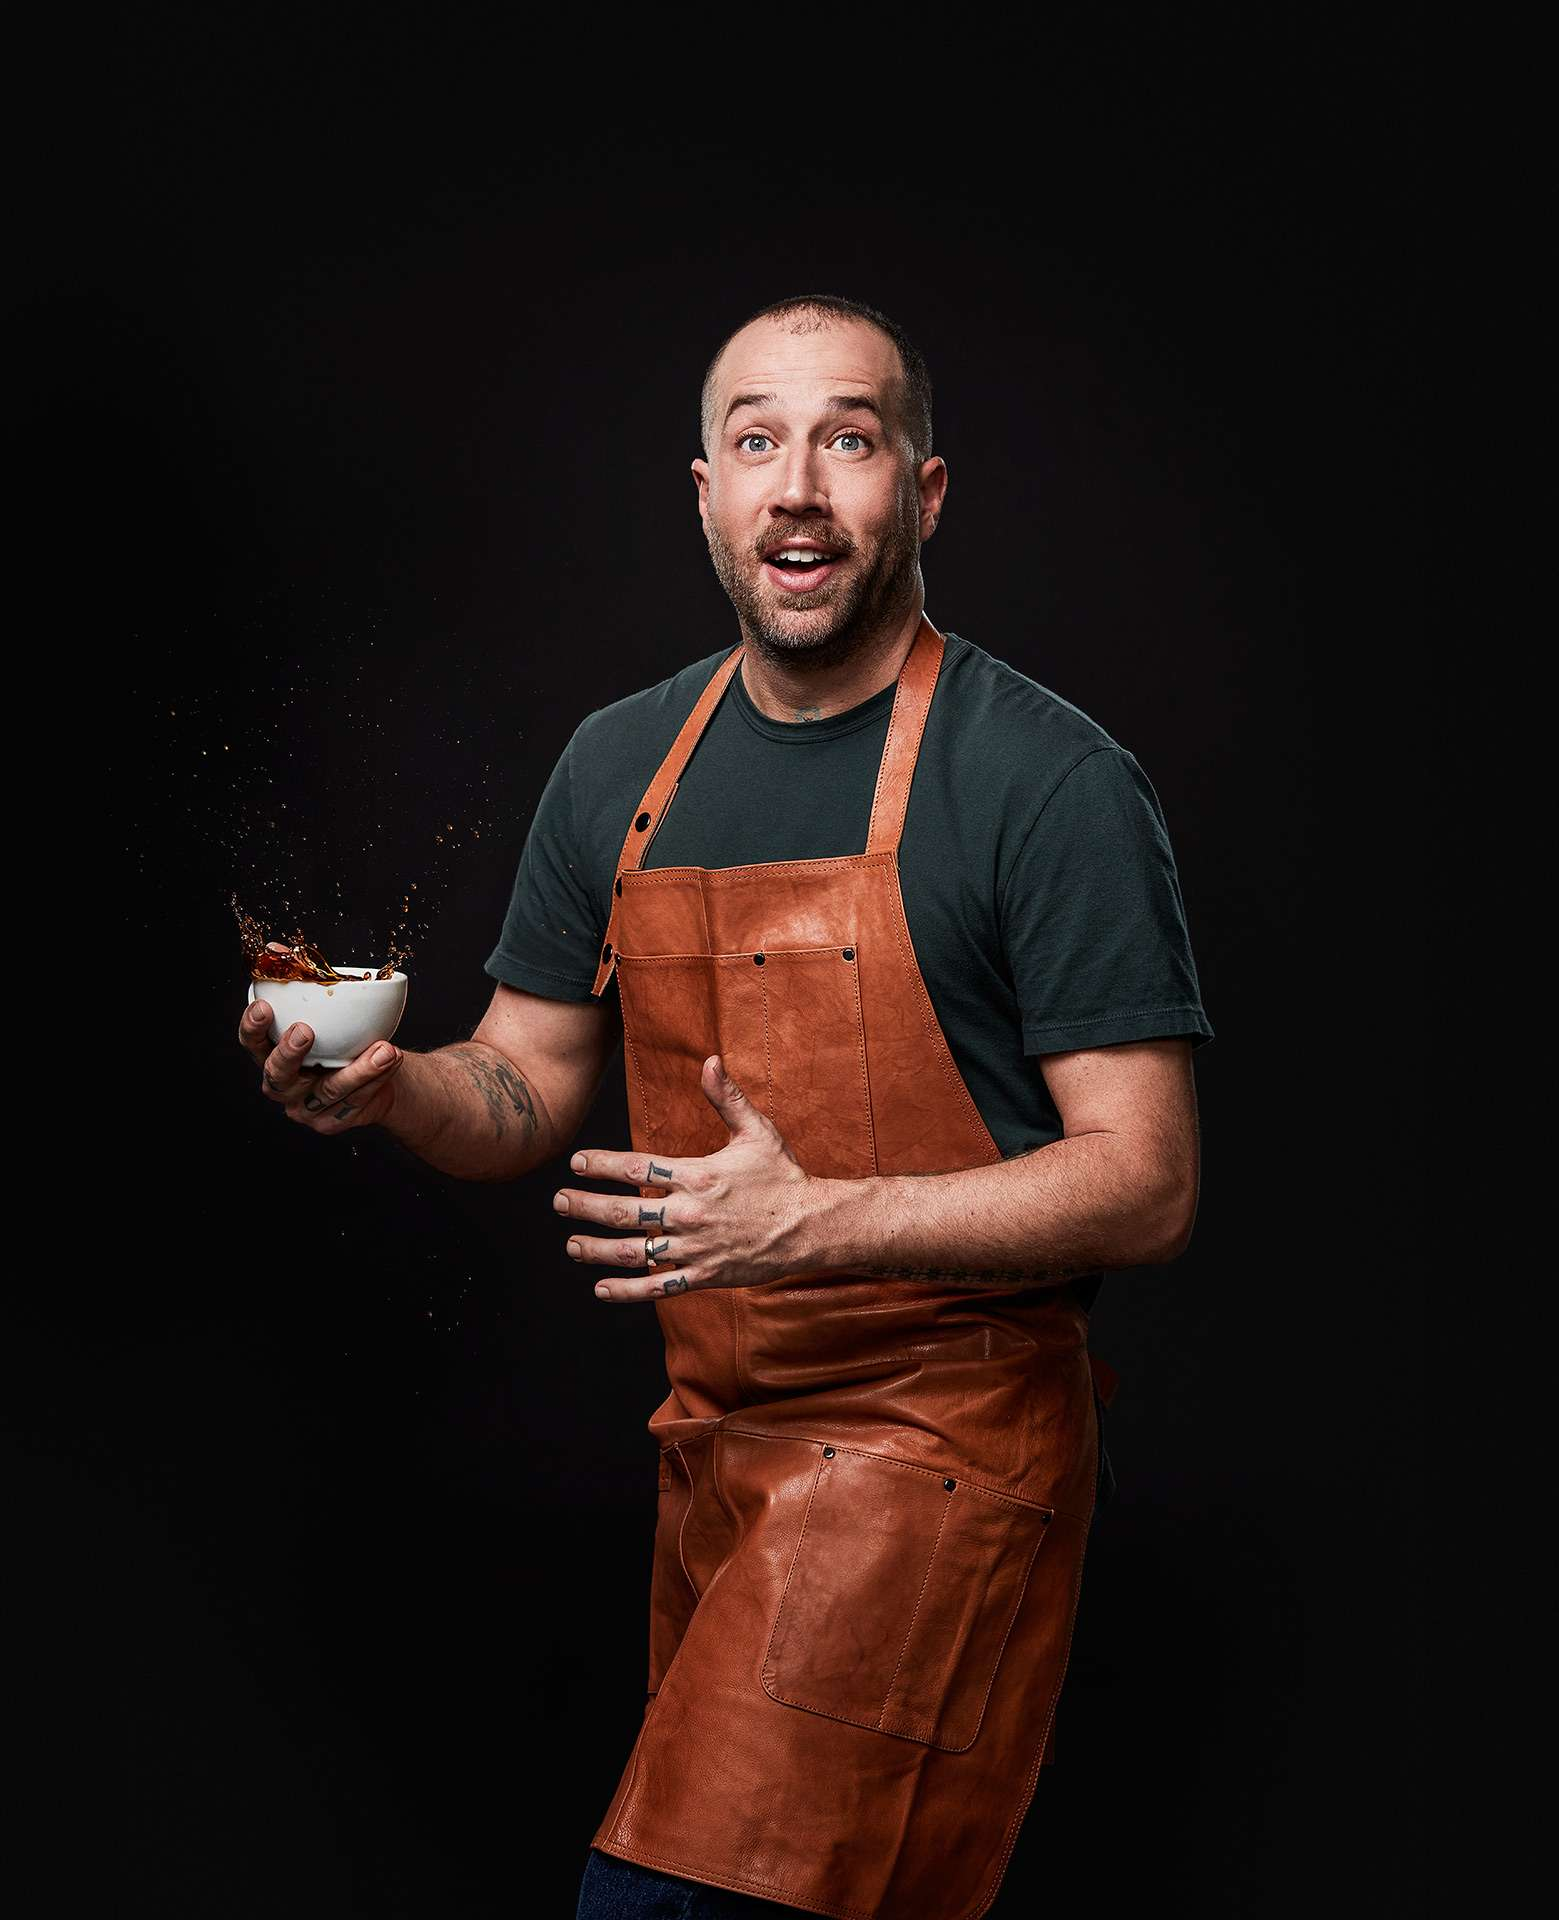 portrait of food stylist and chief Blake Mackay holding a splashing cup of coffee and acting surprised by Jocelyn Michel for the Cathcart